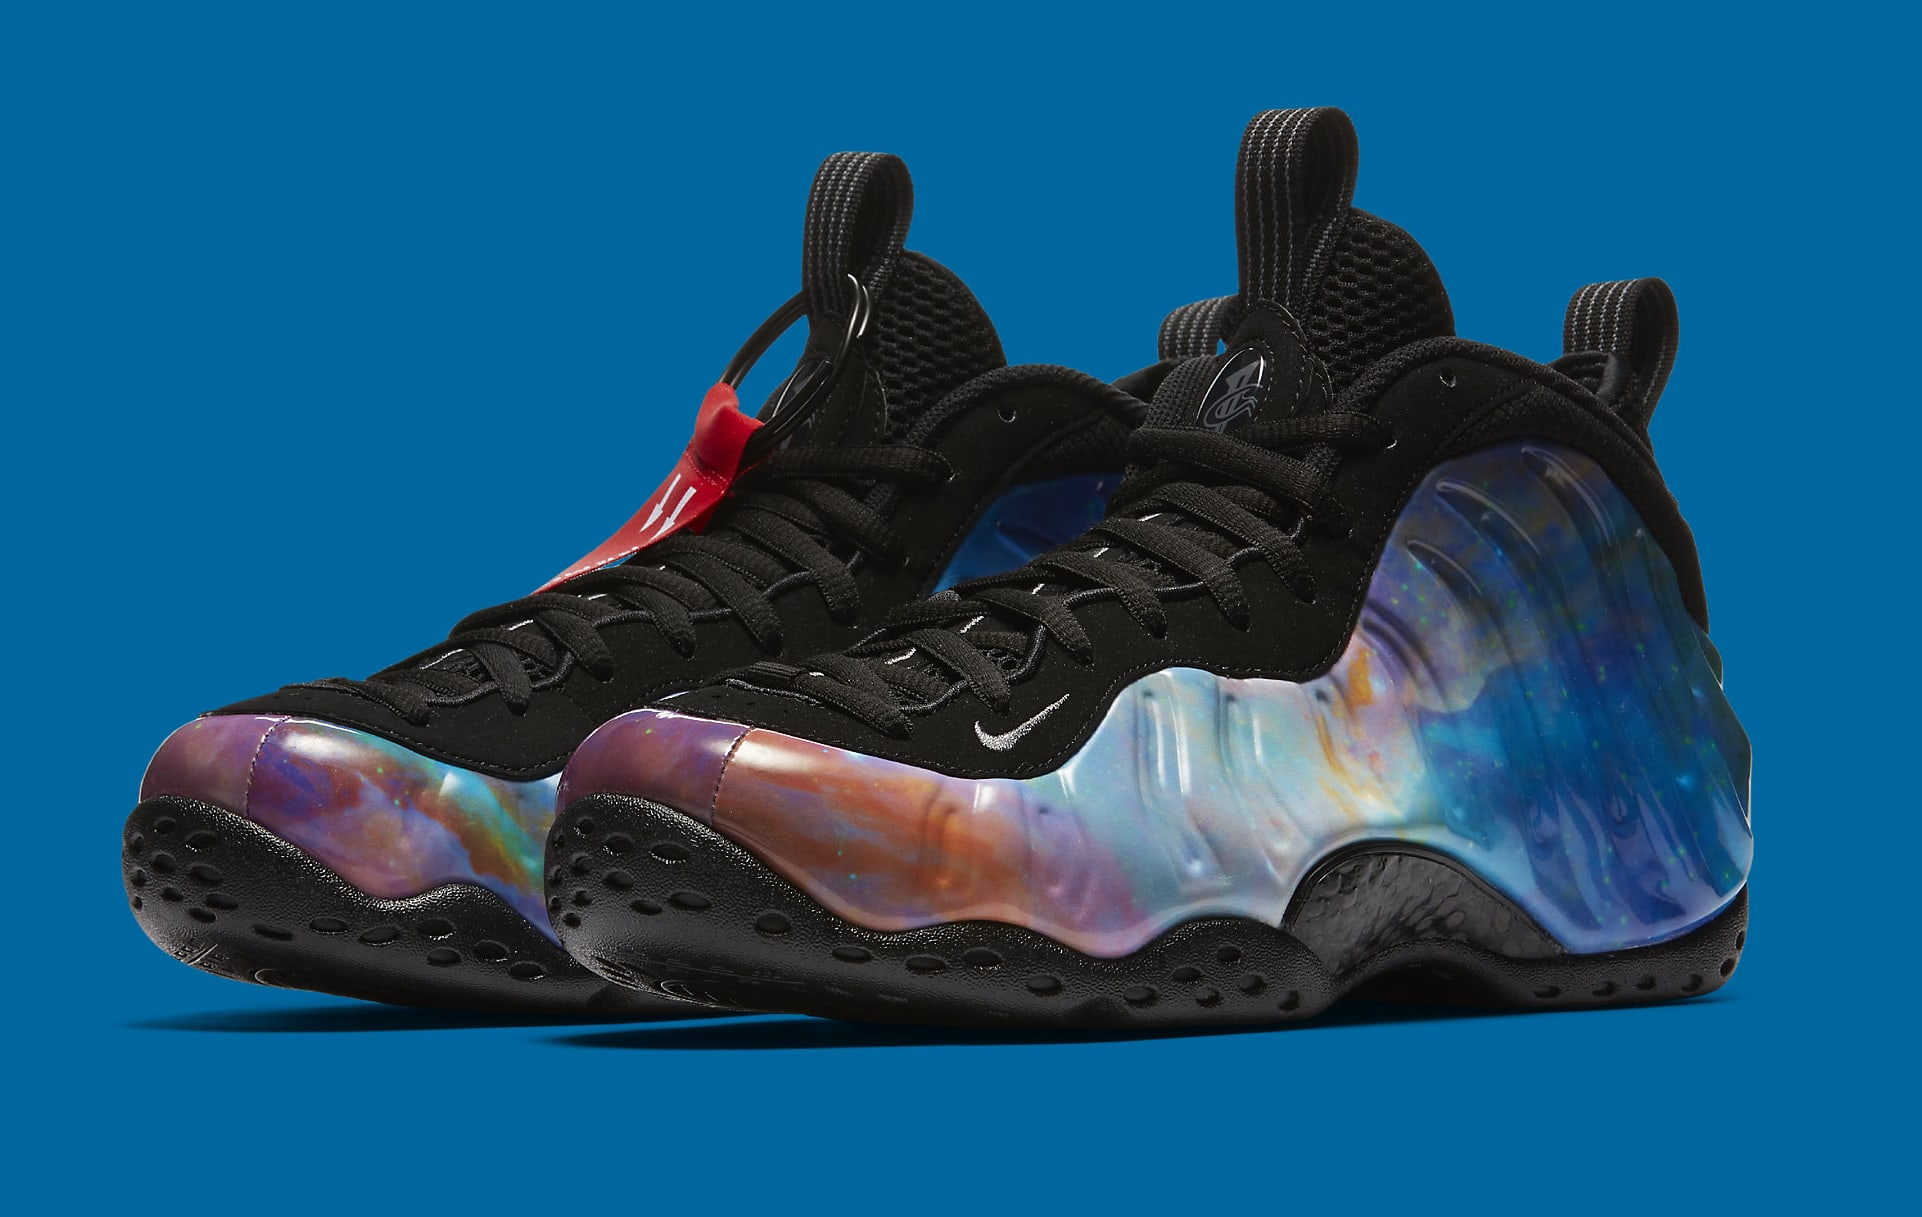 Shop Discount Nike Foamposite One Red Blue Black